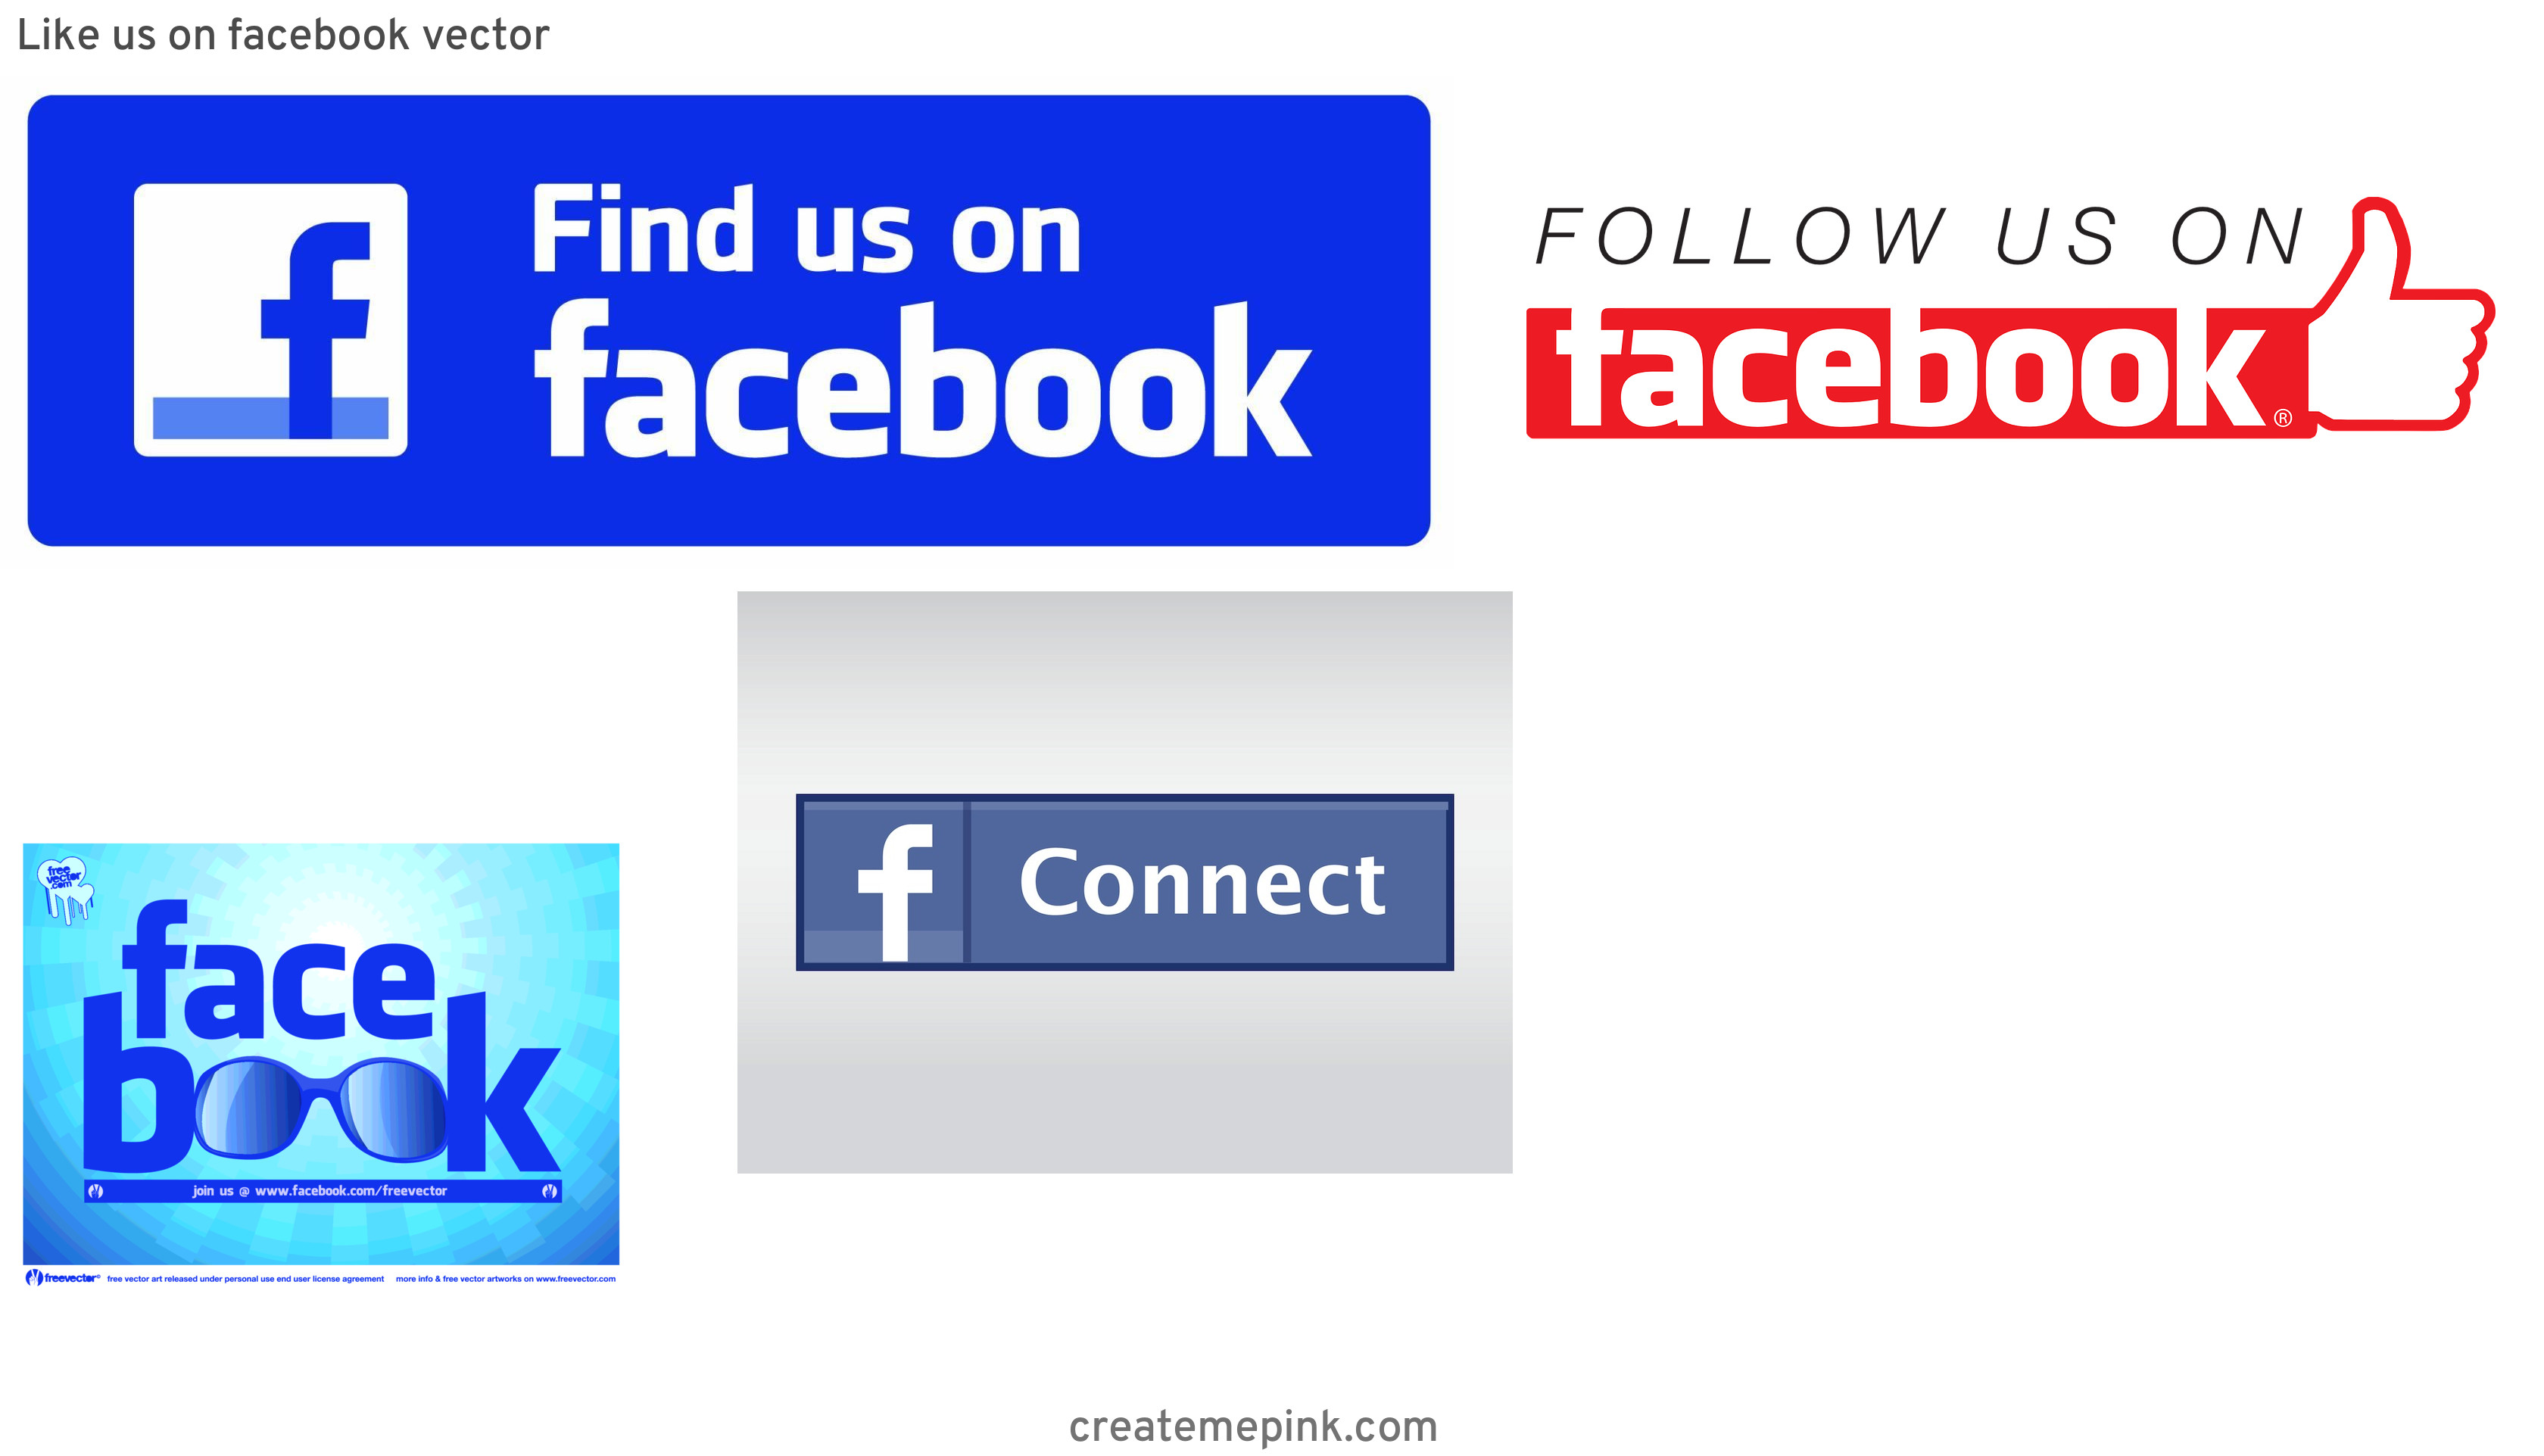 Official Like Us On Facebook Logo Vector: Like Us On Facebook Vector